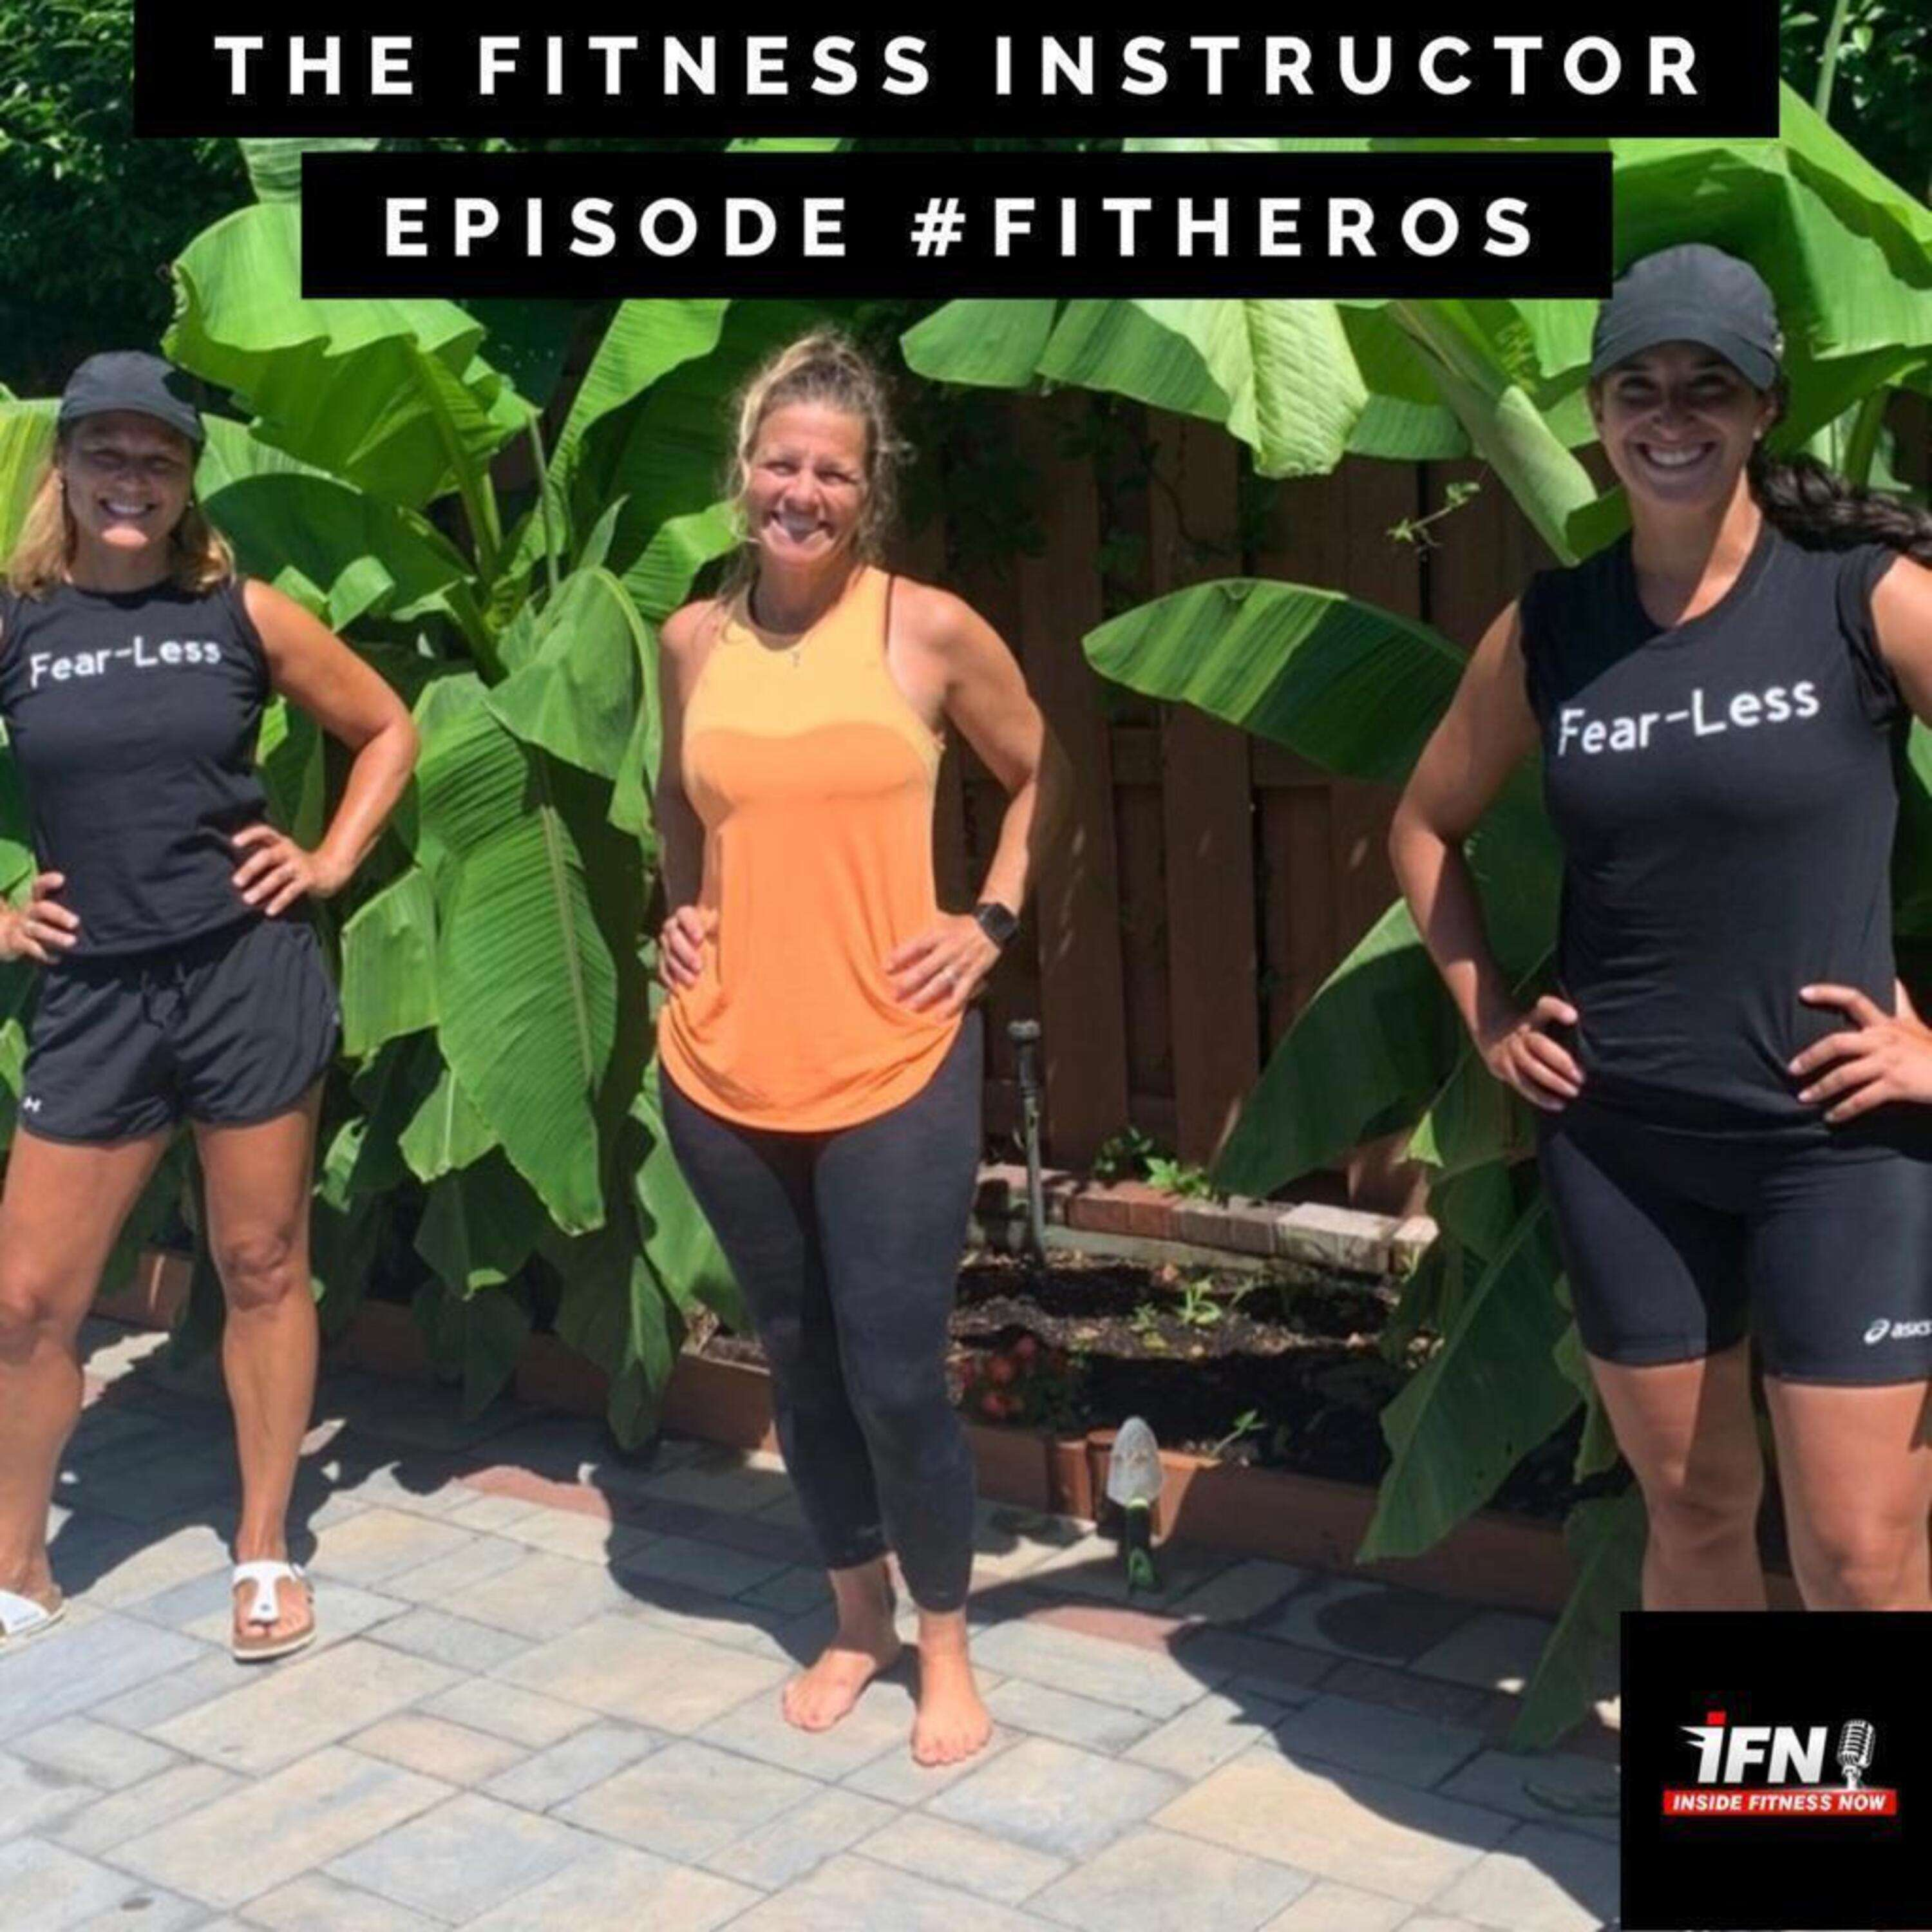 The fitness instructor episode - #FitHeroes